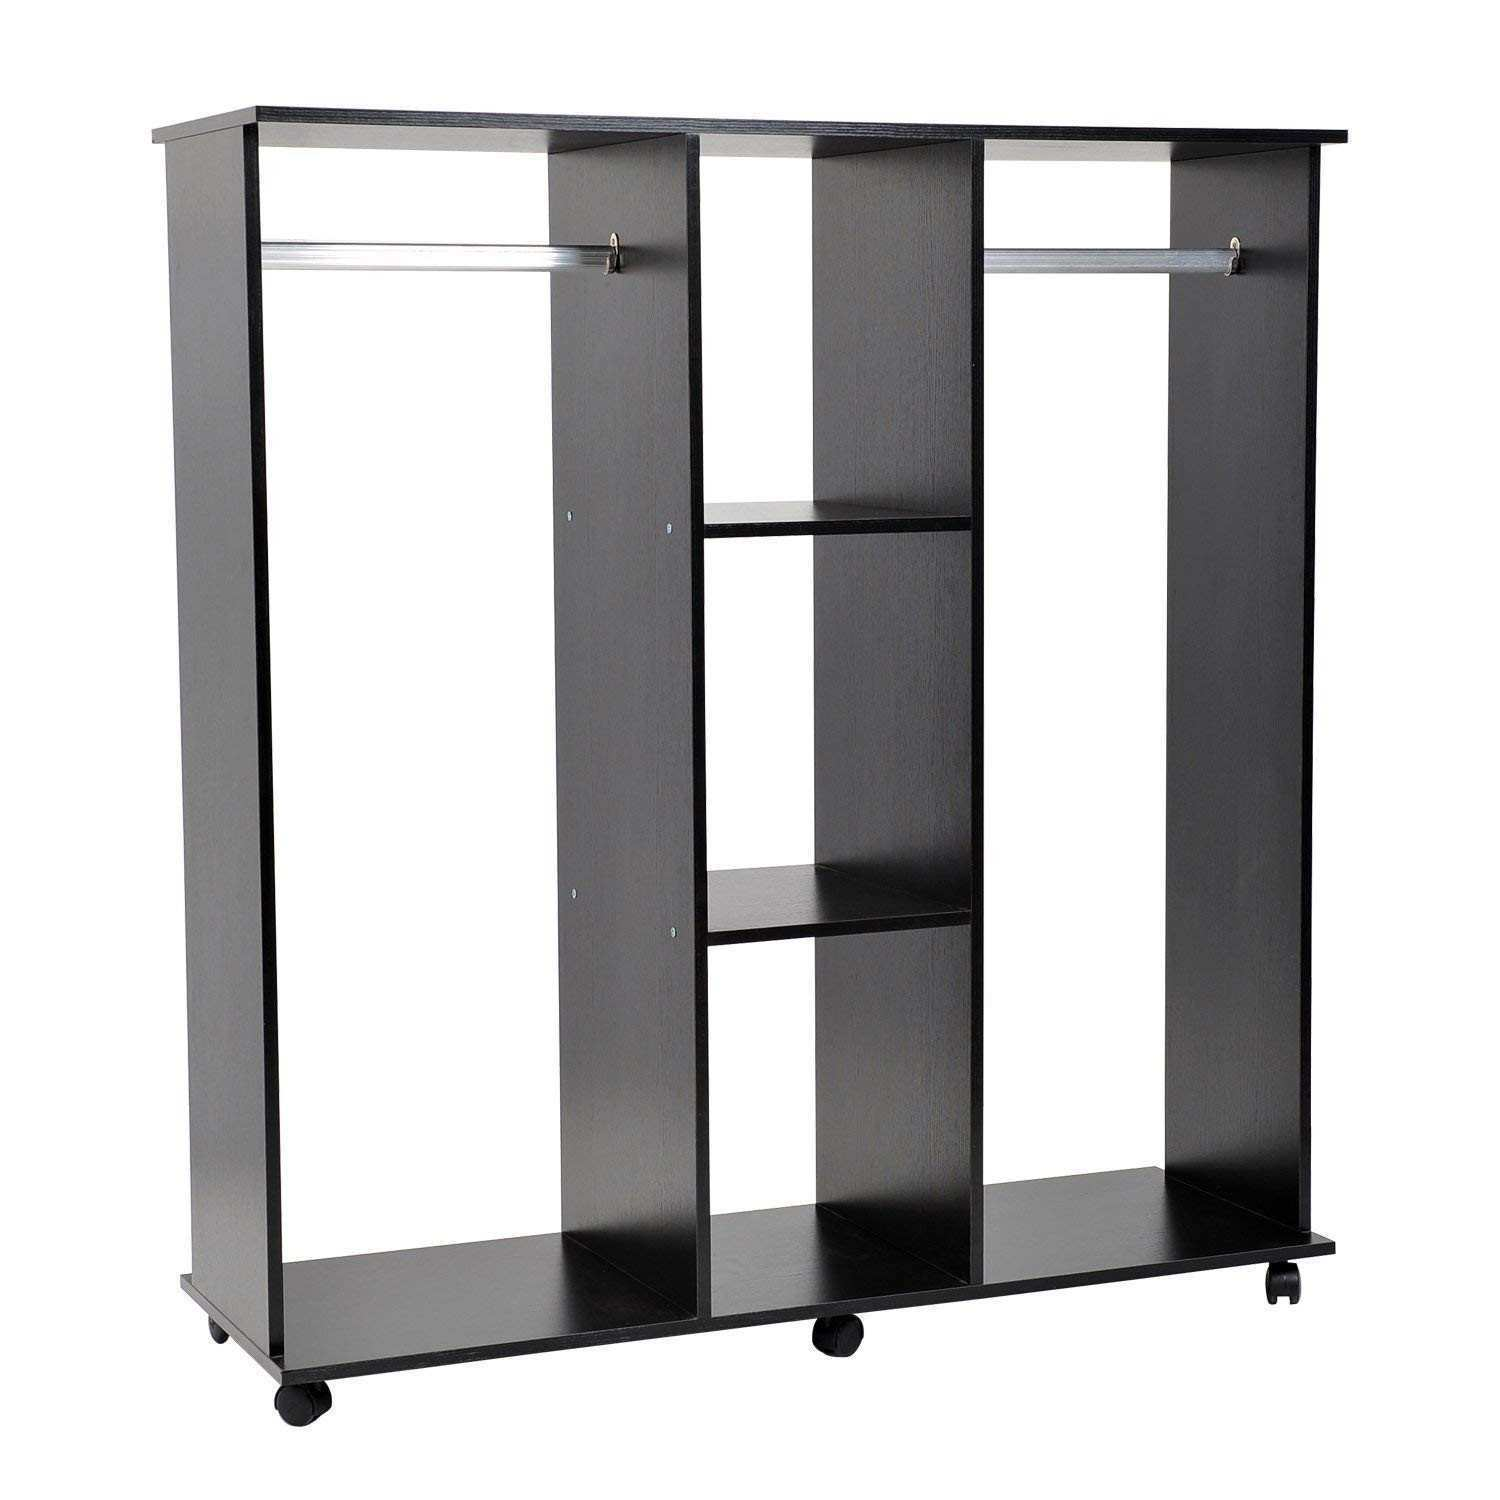 Home Design Closet Shelf With Hanging Rod Lovely 86y Wardrobe